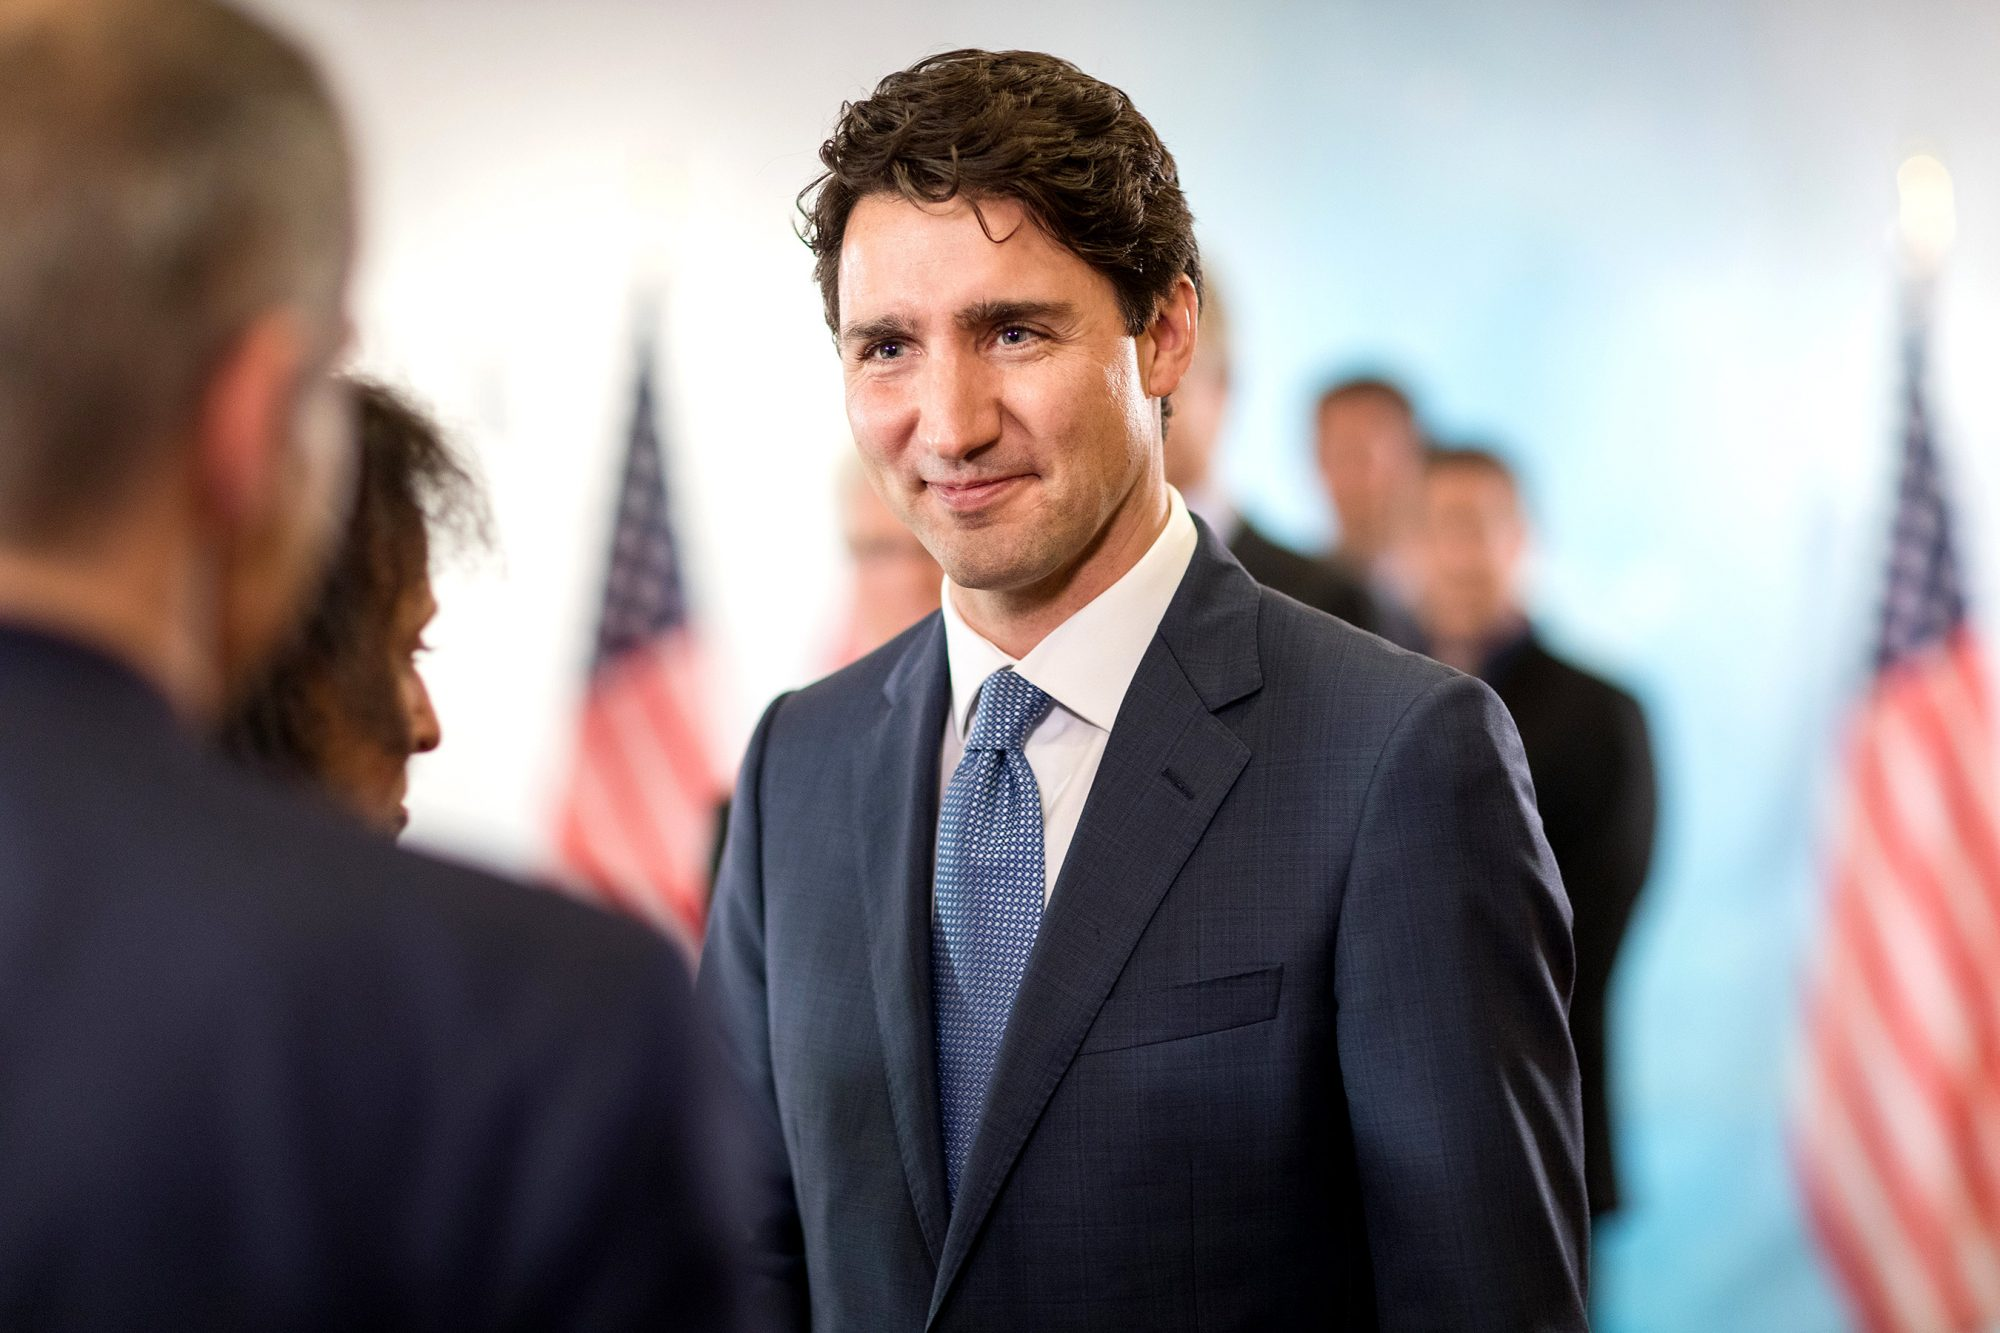 Justin Trudeau,- Key Speakers At The 2017 CERAWeek Conference